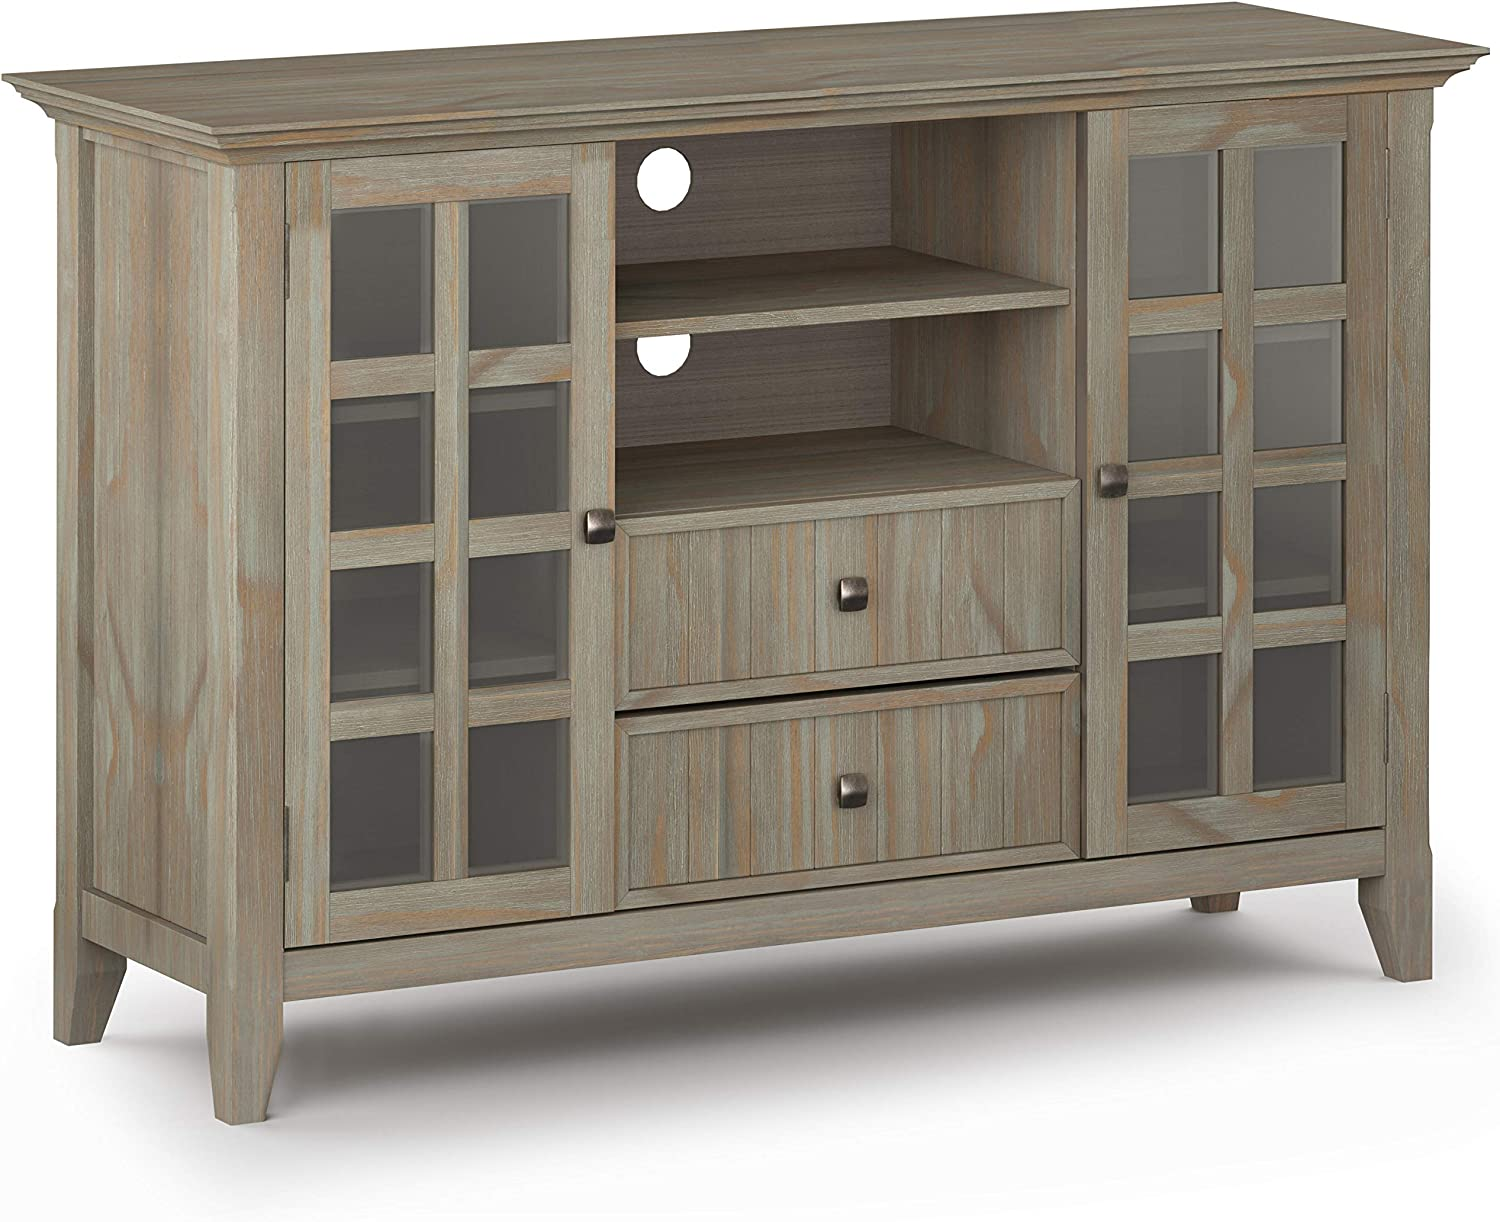 "SIMPLIHOME Acadian SOLID WOOD Universal Tall TV Media Stand, 53 inch Wide, Farmhouse Rustic, Storage Shelves and Cabinets with Glass Doors, for Flat Screen TVs up to 60"", Distressed Grey"